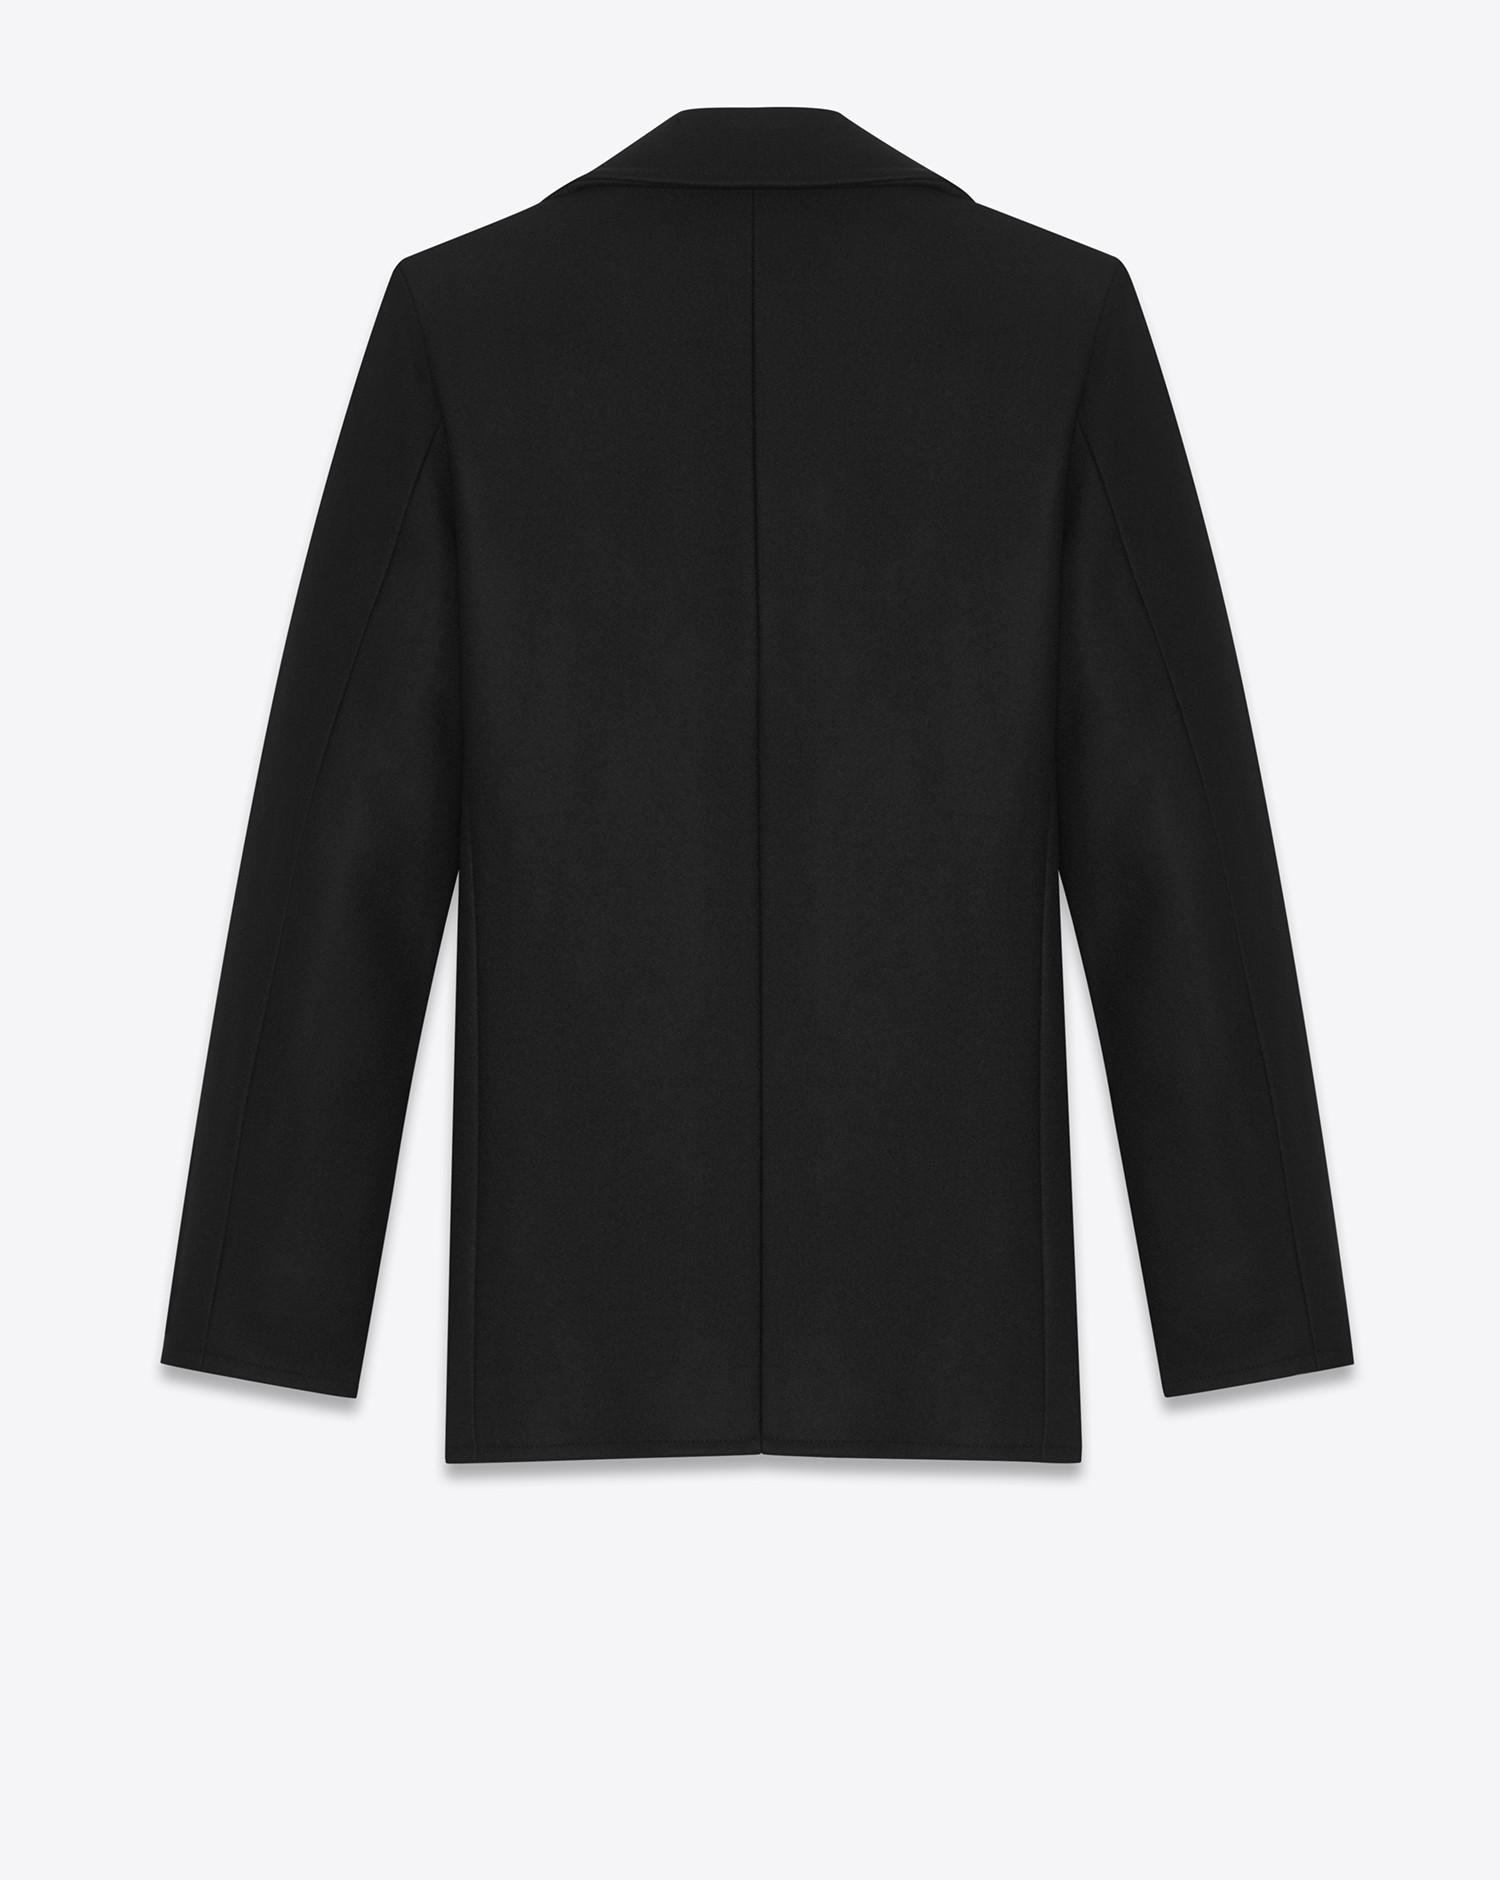 cde1400d0b0 Lyst - Saint Laurent Caban Marin In Black Virgin Wool in Black for Men